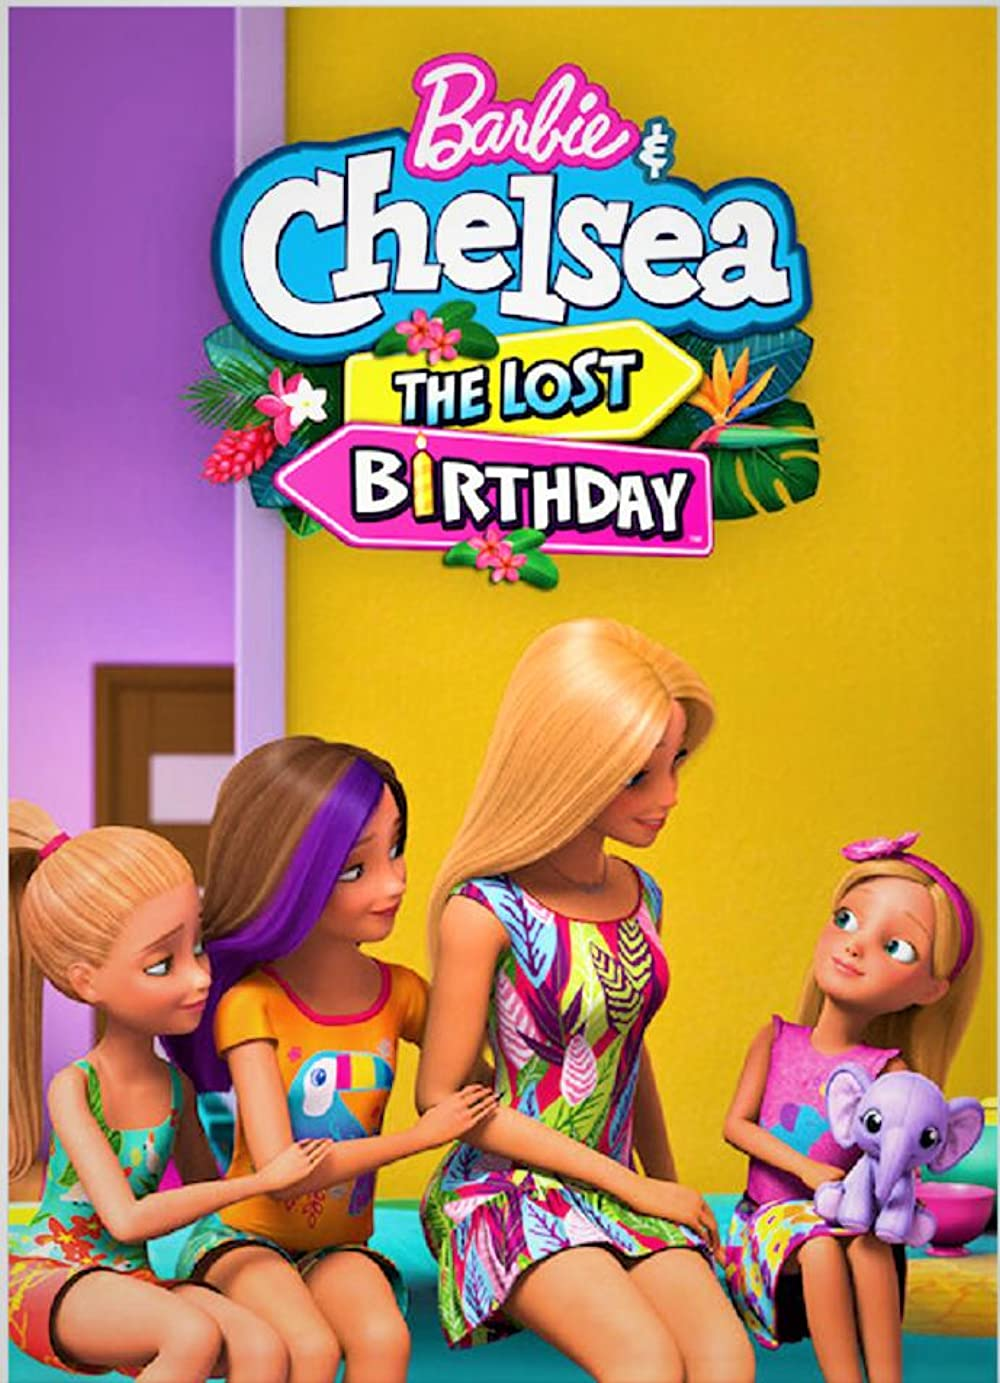 Barbie & Chelsea the Lost Birthday 2021 English 720p HDRip 800MB | 200MB Download